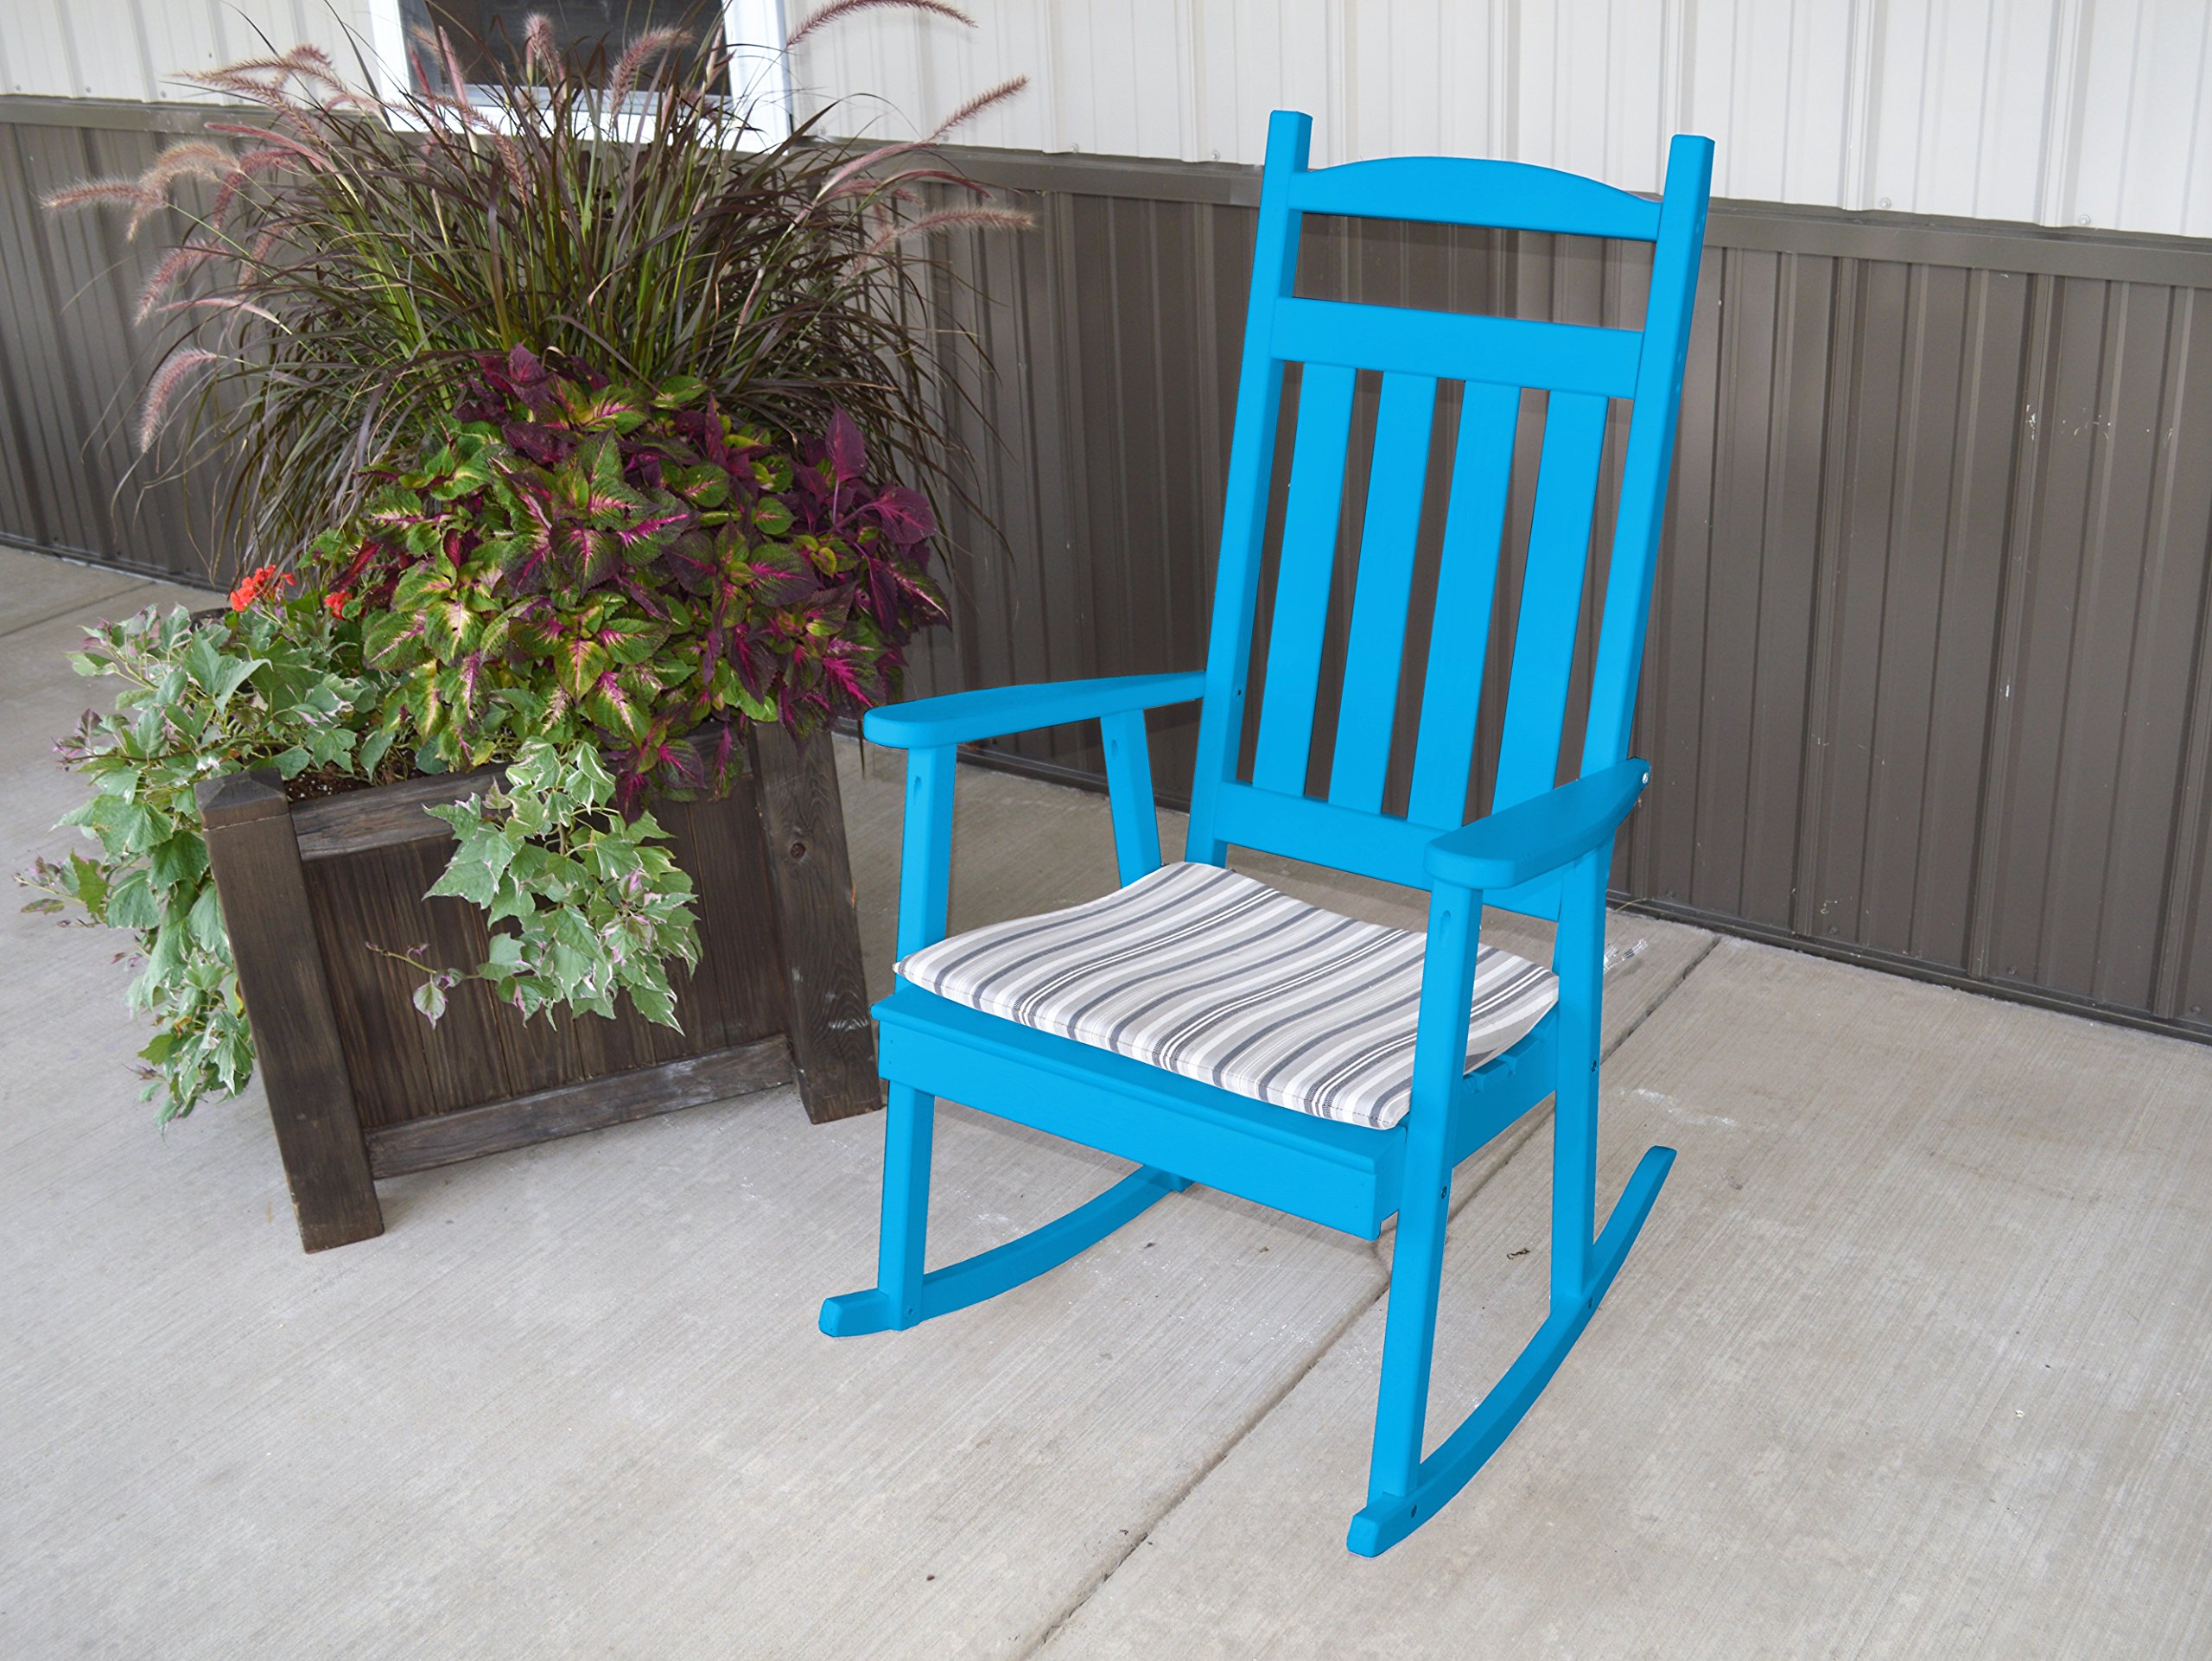 BEST ROCKING CHAIR FOR LIVING ROOM-PORCH FURNITURE, Classic Rocker Country Decor to Contemporary , Cozy By A Fireplace Or Patio, Amish US Made in 9 Gorgeous Colors by ASPEN TREE INTERIORS